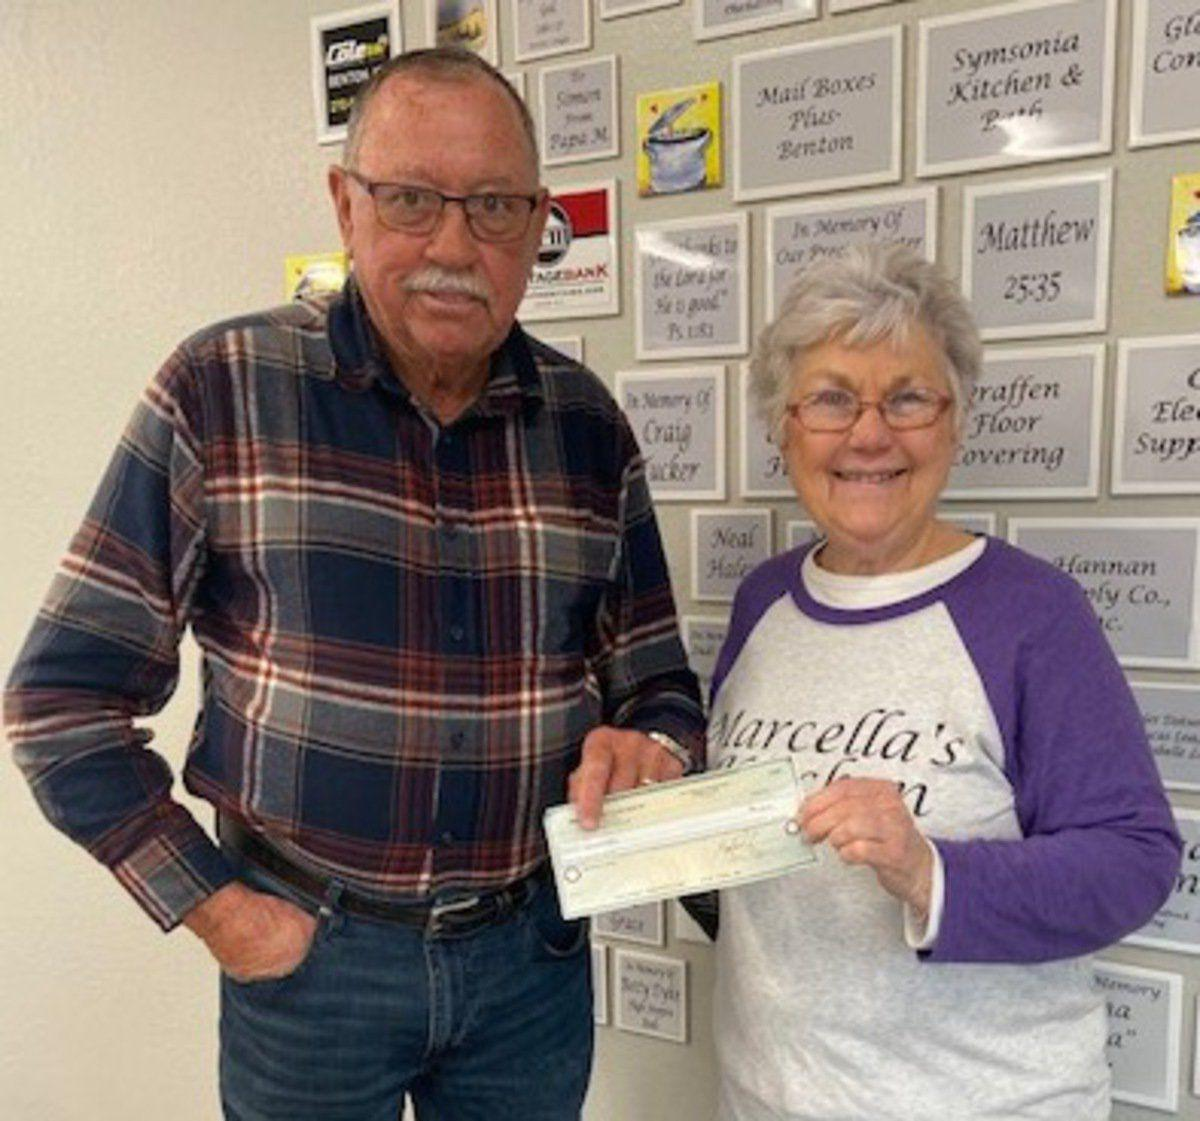 Marcella's Kitchen receives support from local organizations